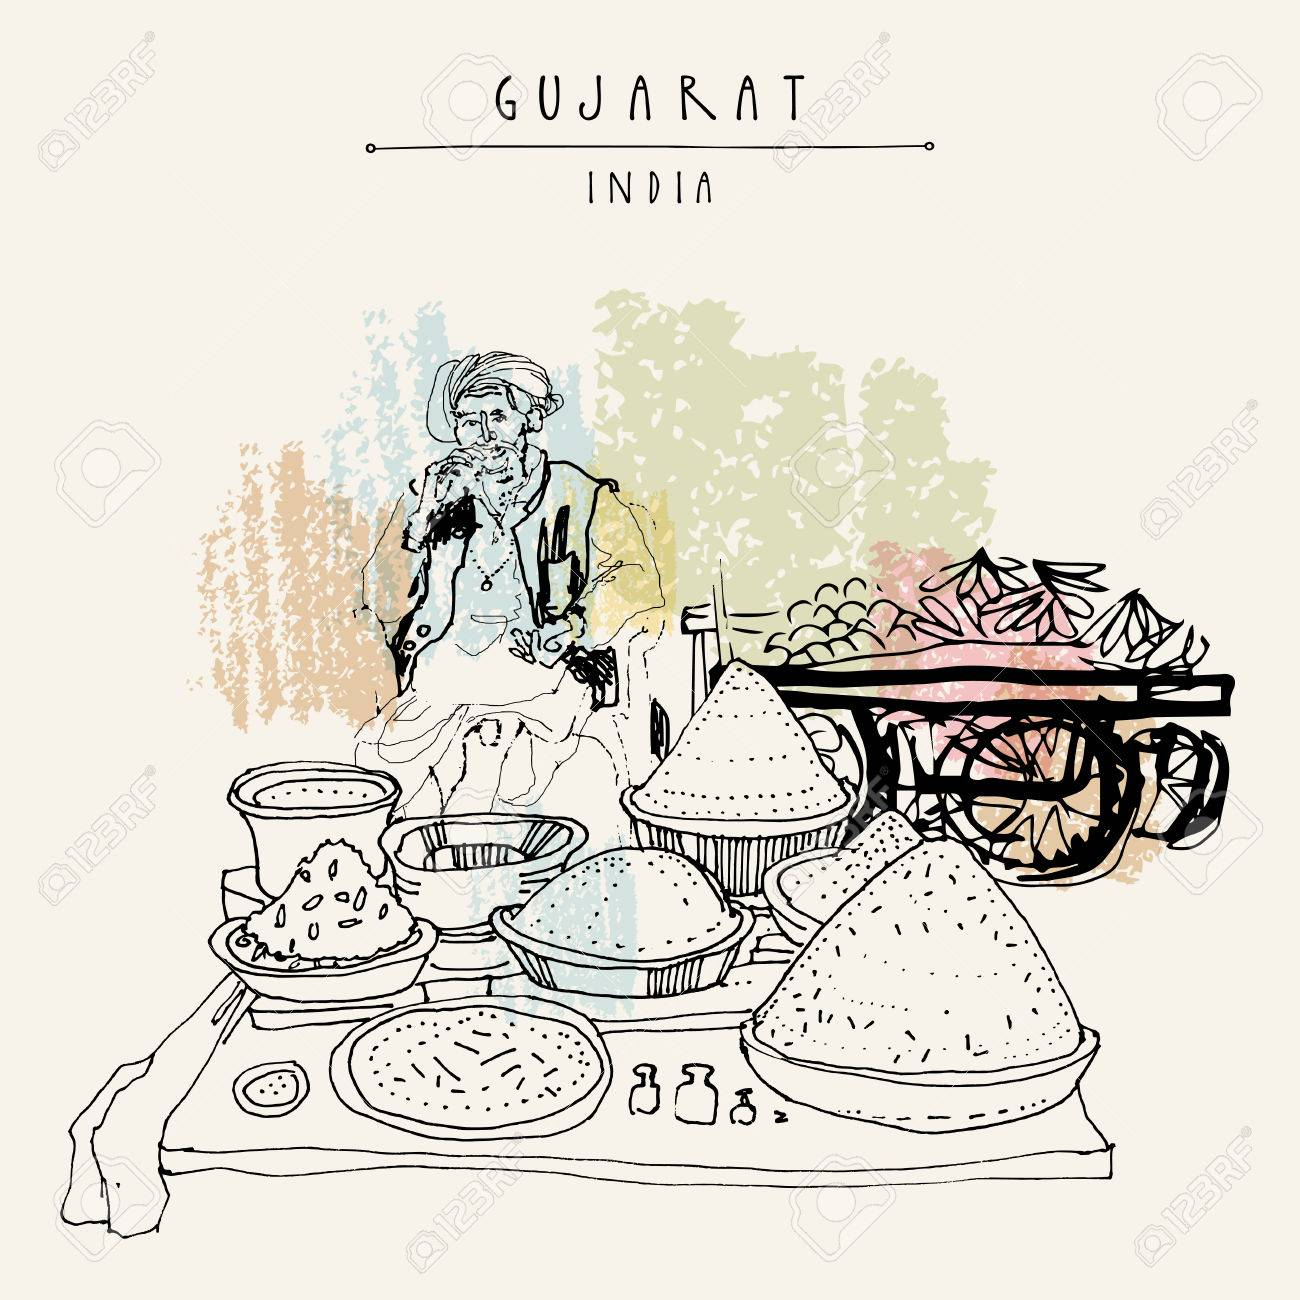 Spice market in Gujarat, India. Old Indian man wearing traditional attire with a turban. Travel art. Vintage hand drawn postcard in vector - 84632659